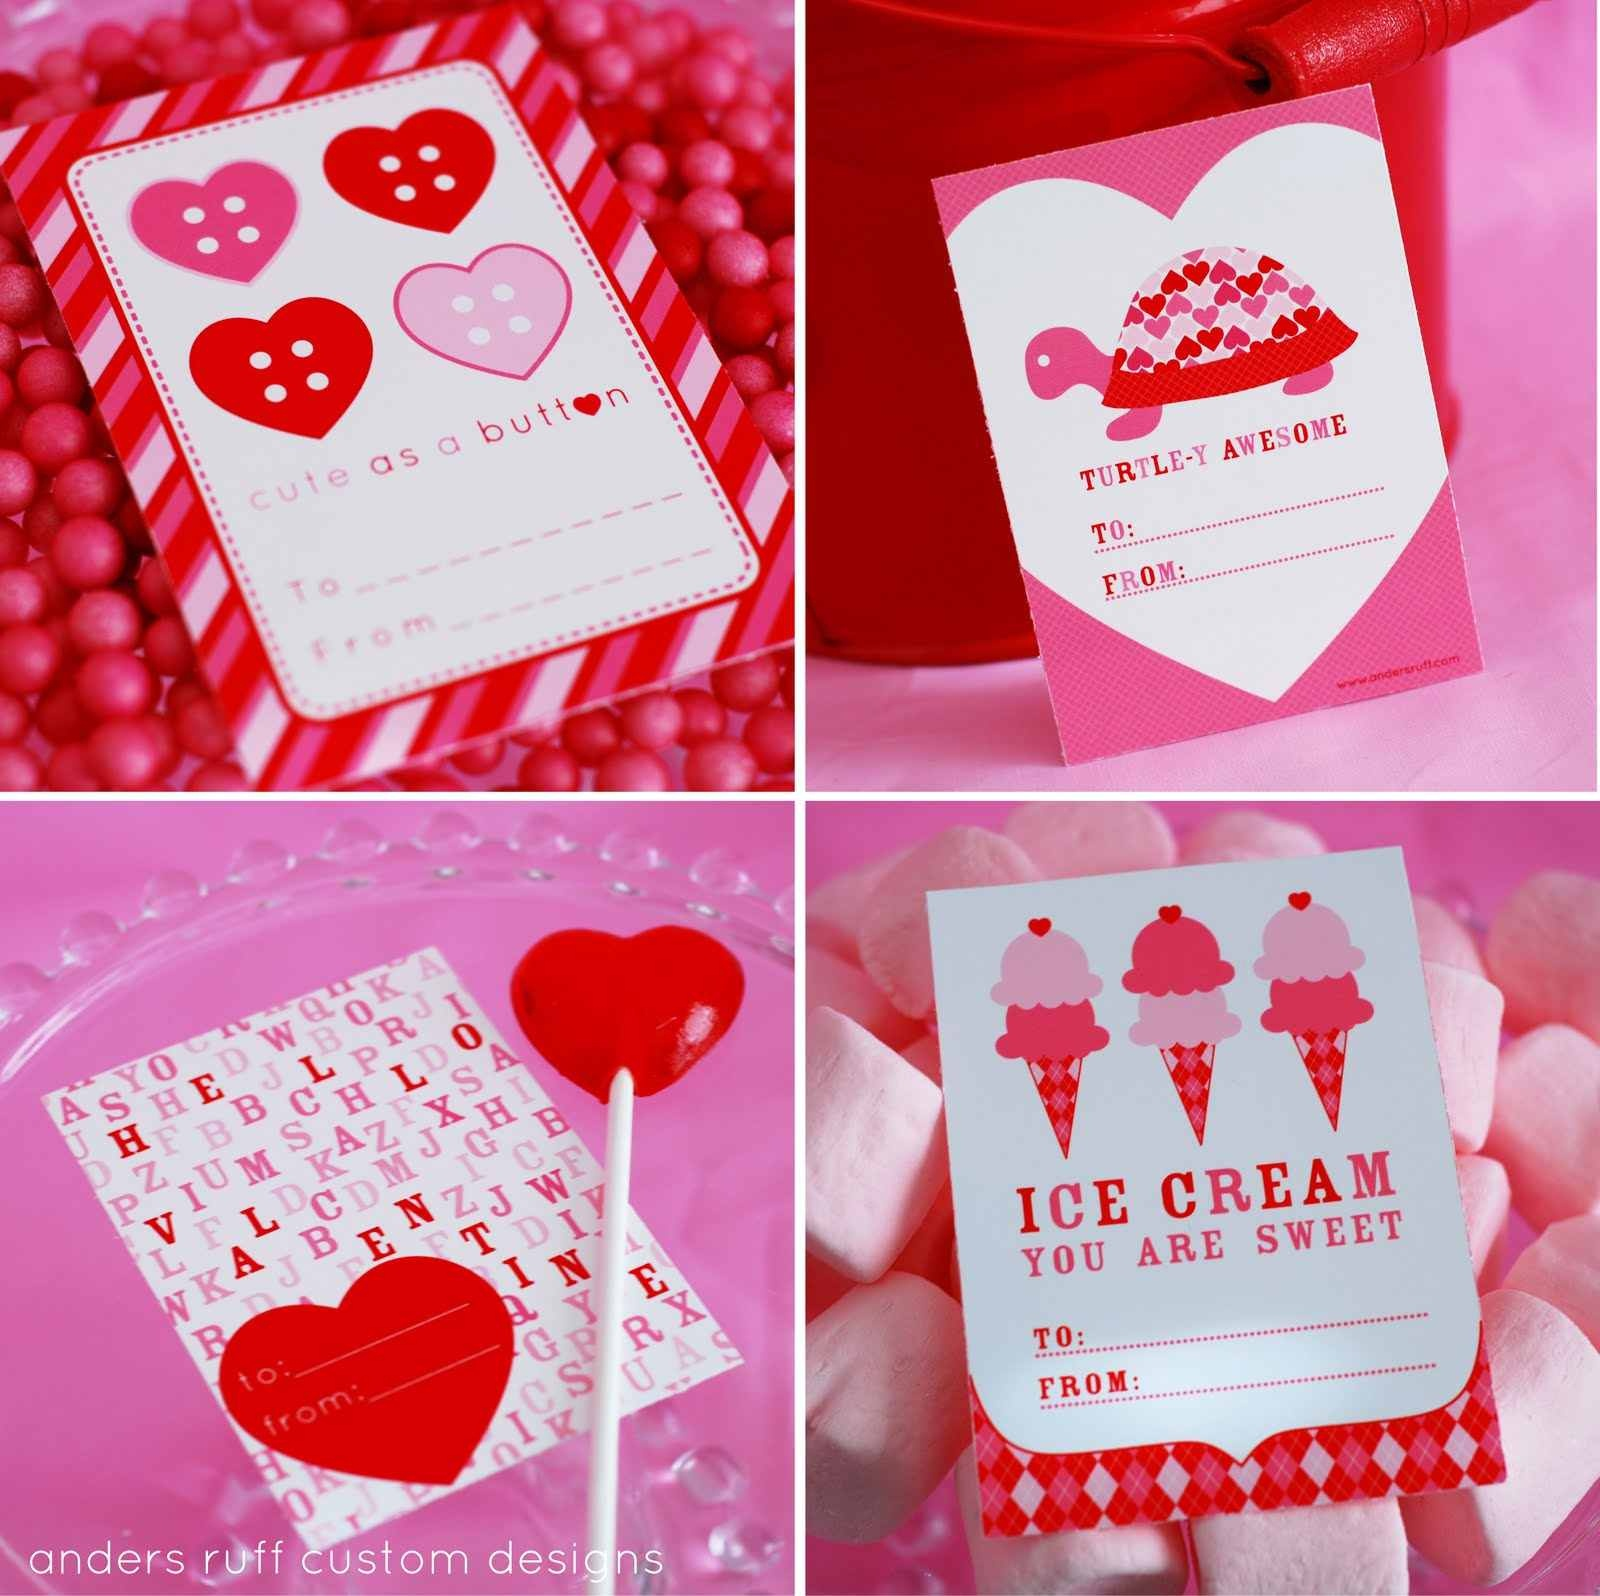 10 Free Printable Valentines Cards For Valentine's Day - Free Printable Valentine Cards For Husband